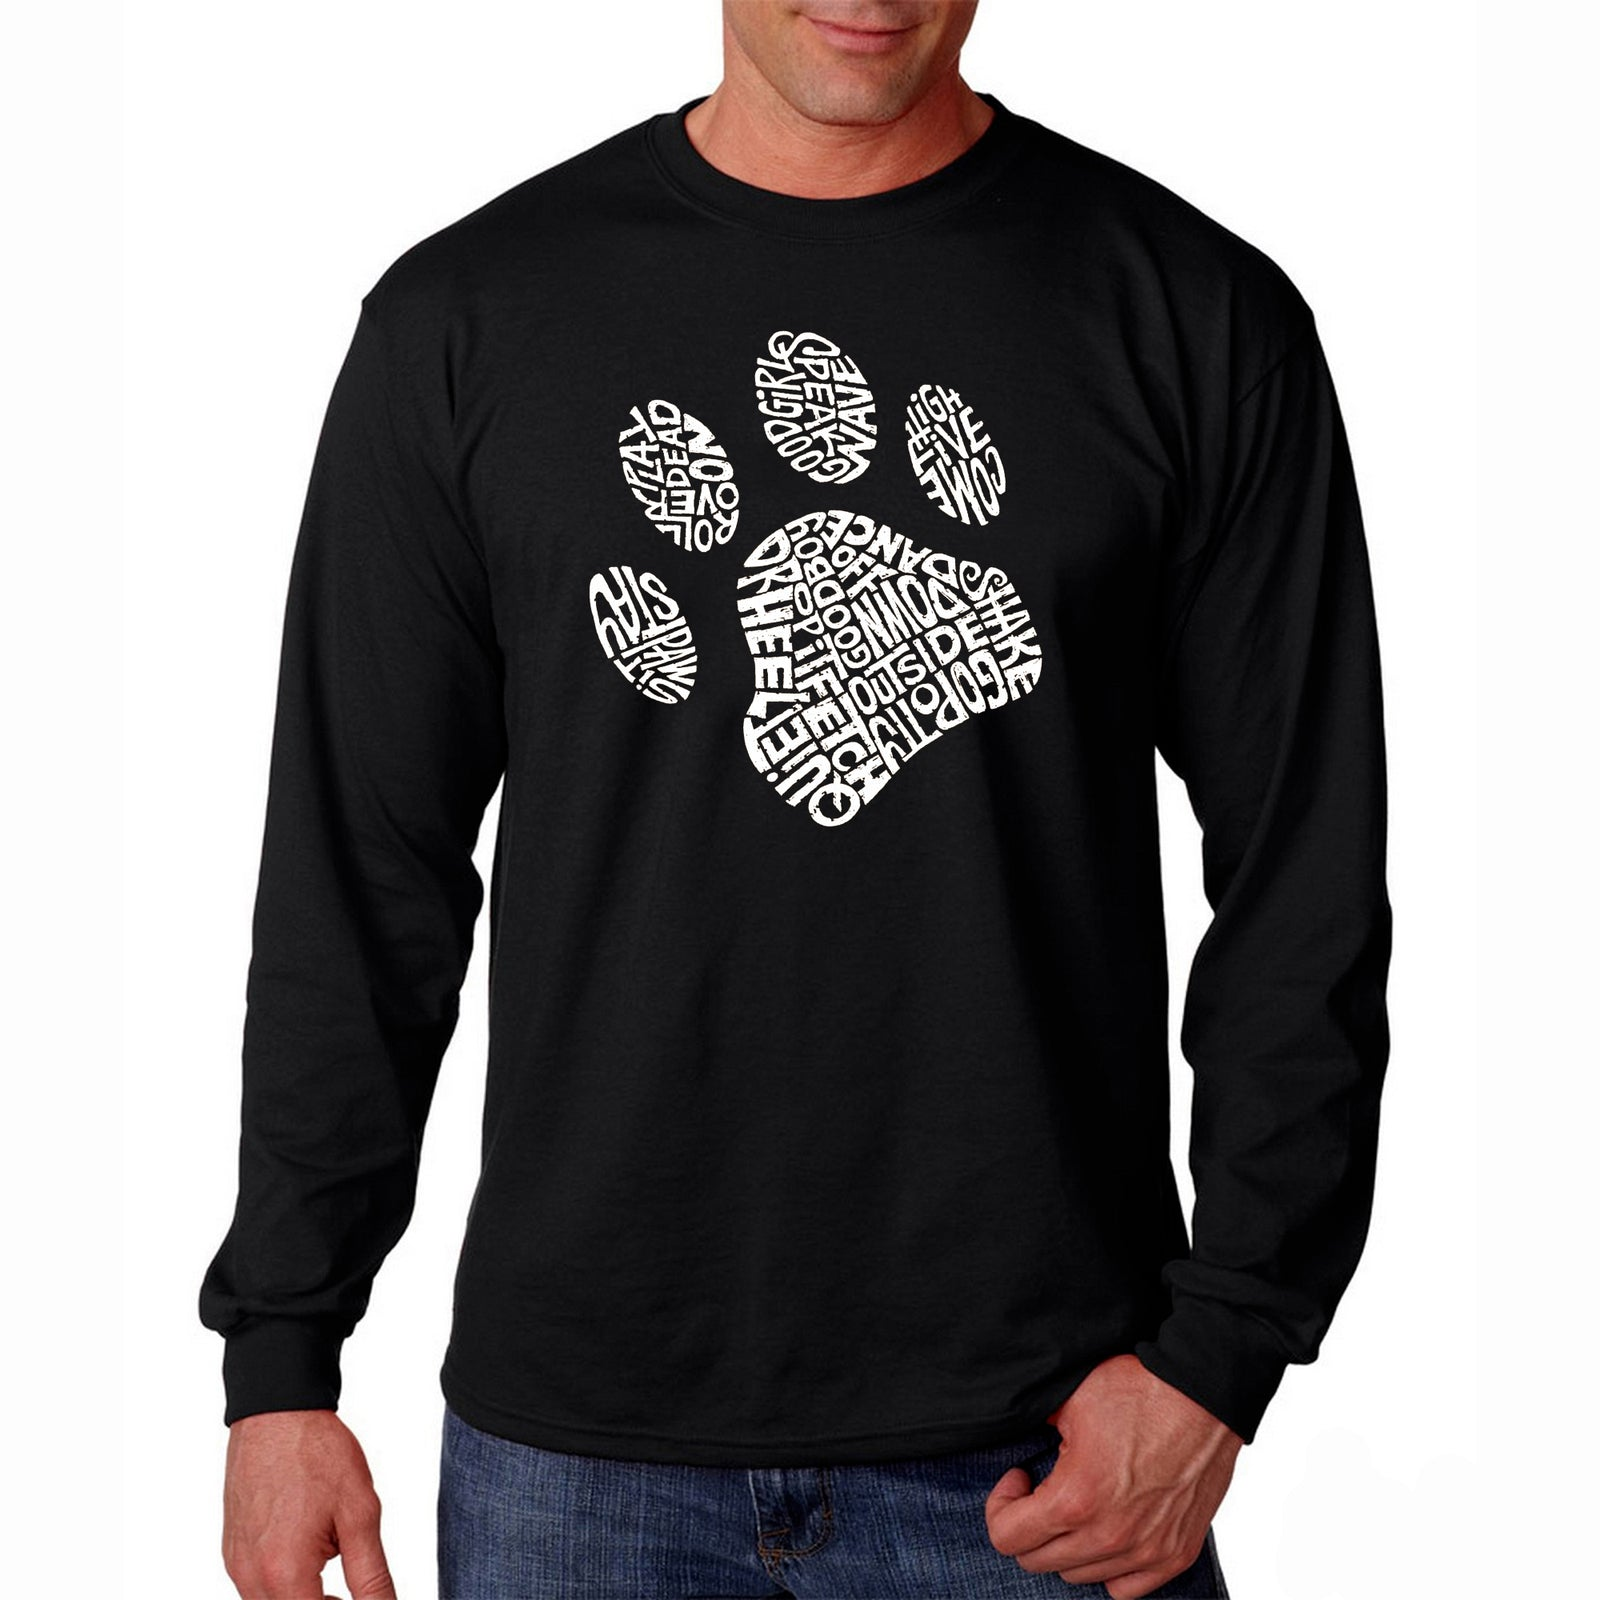 Men's Long Sleeve T-shirt - Dog Paw